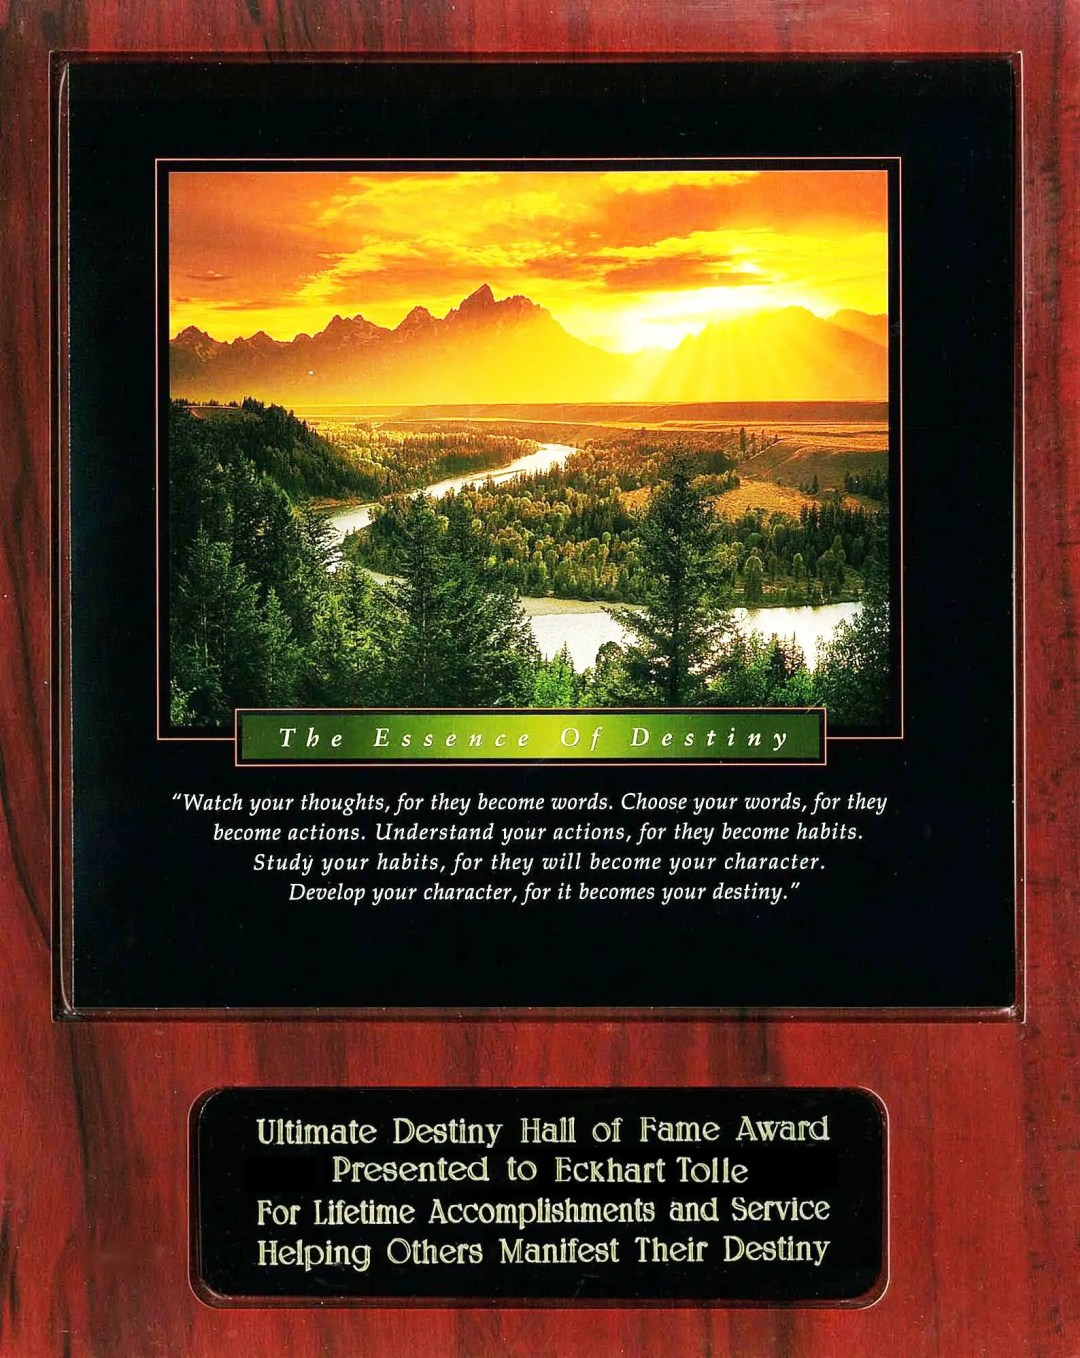 Eckhart Tolle Ultimate Destiny Hall of Fame Award Recipient Plaque